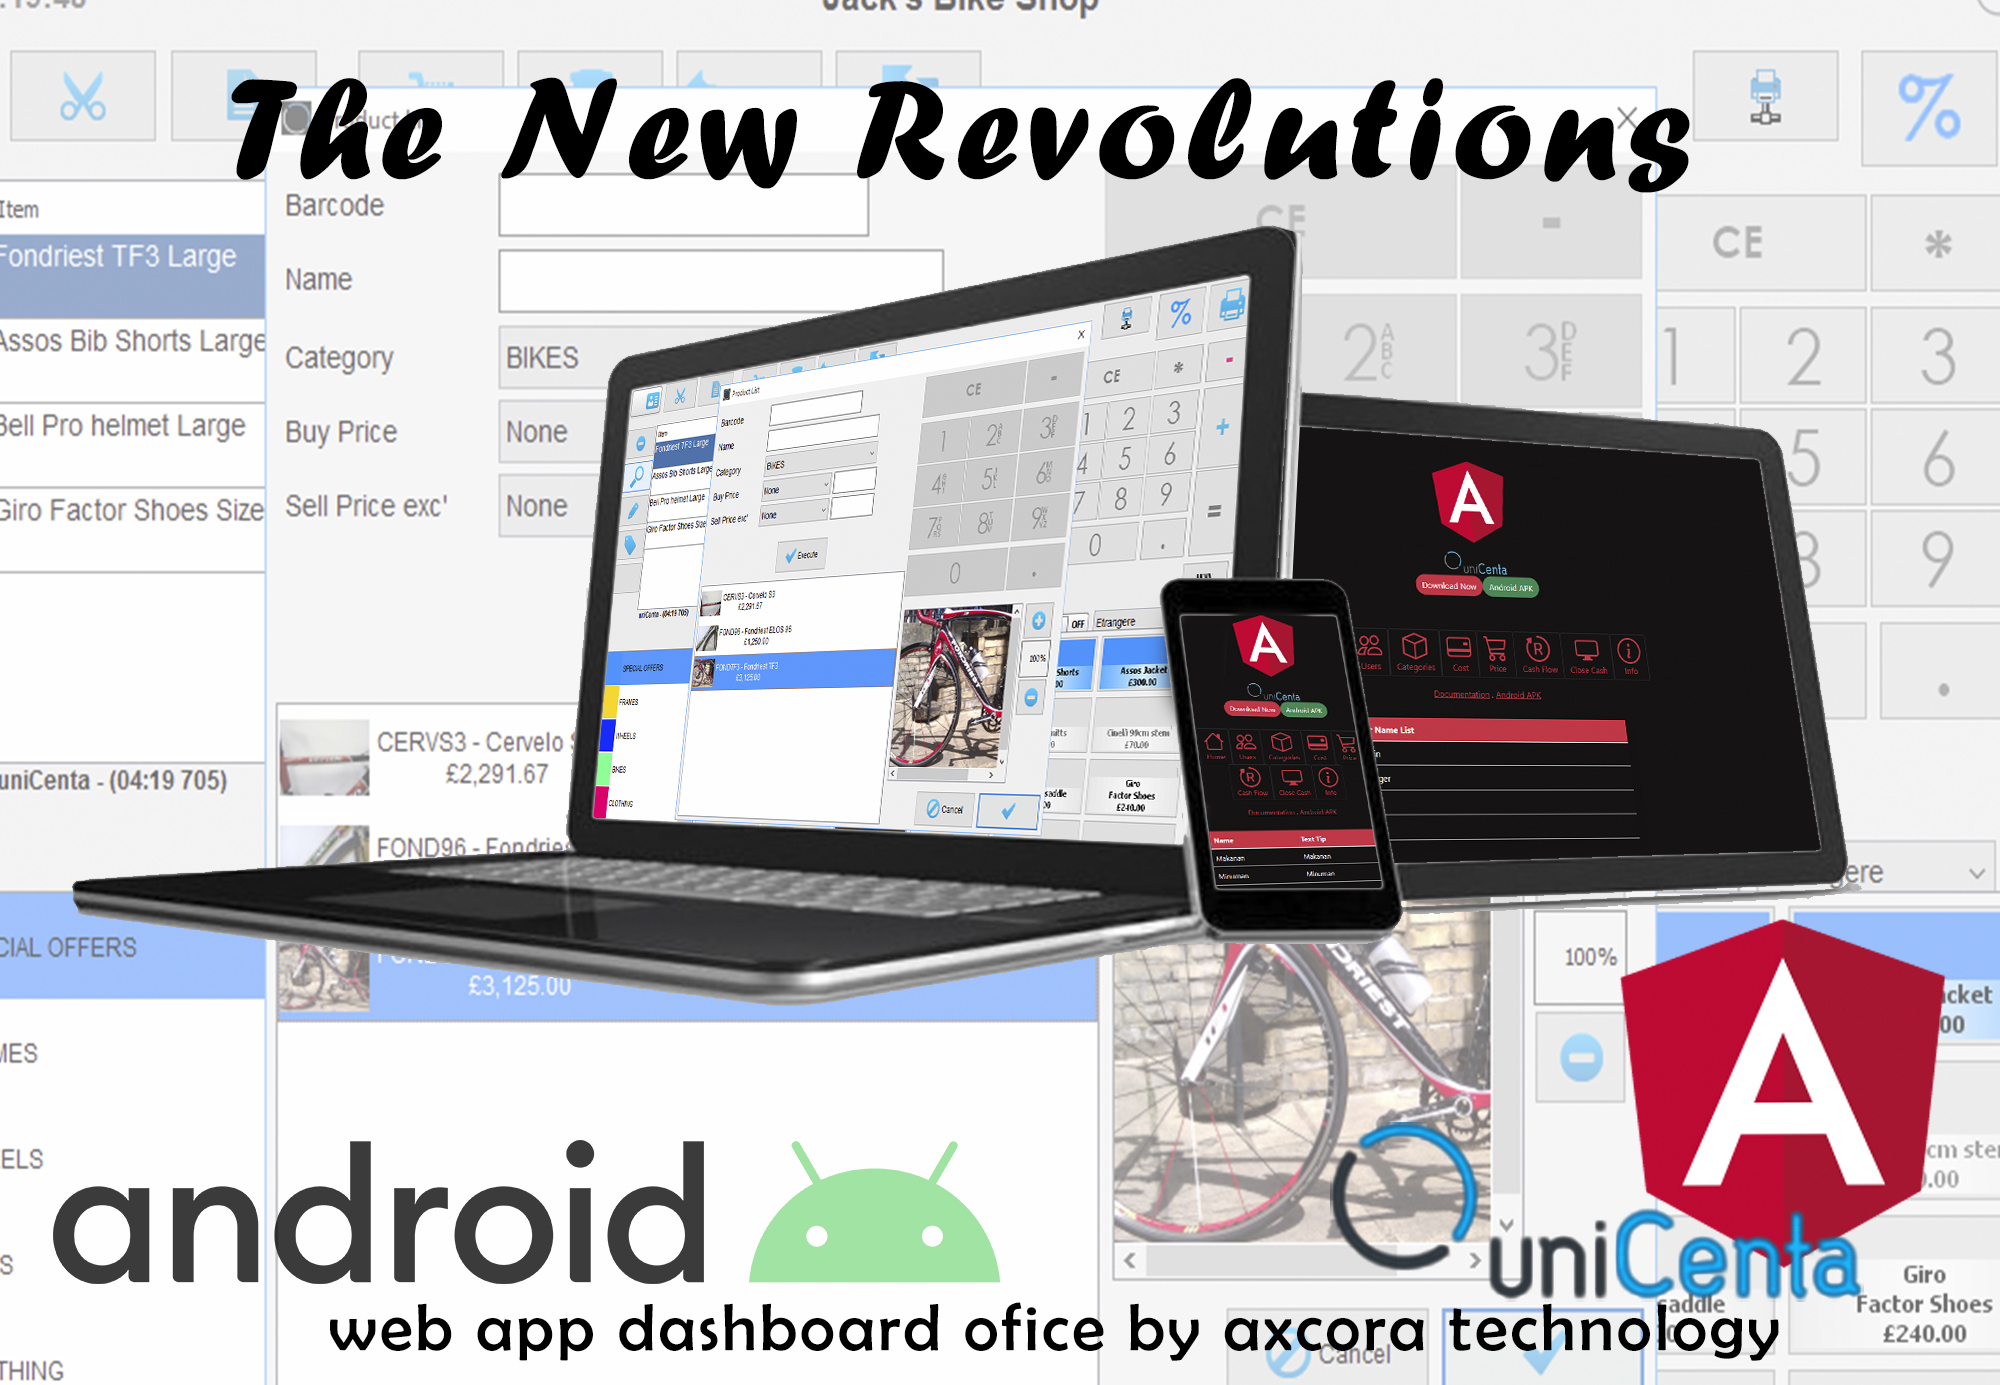 unicenta online android apk web apps